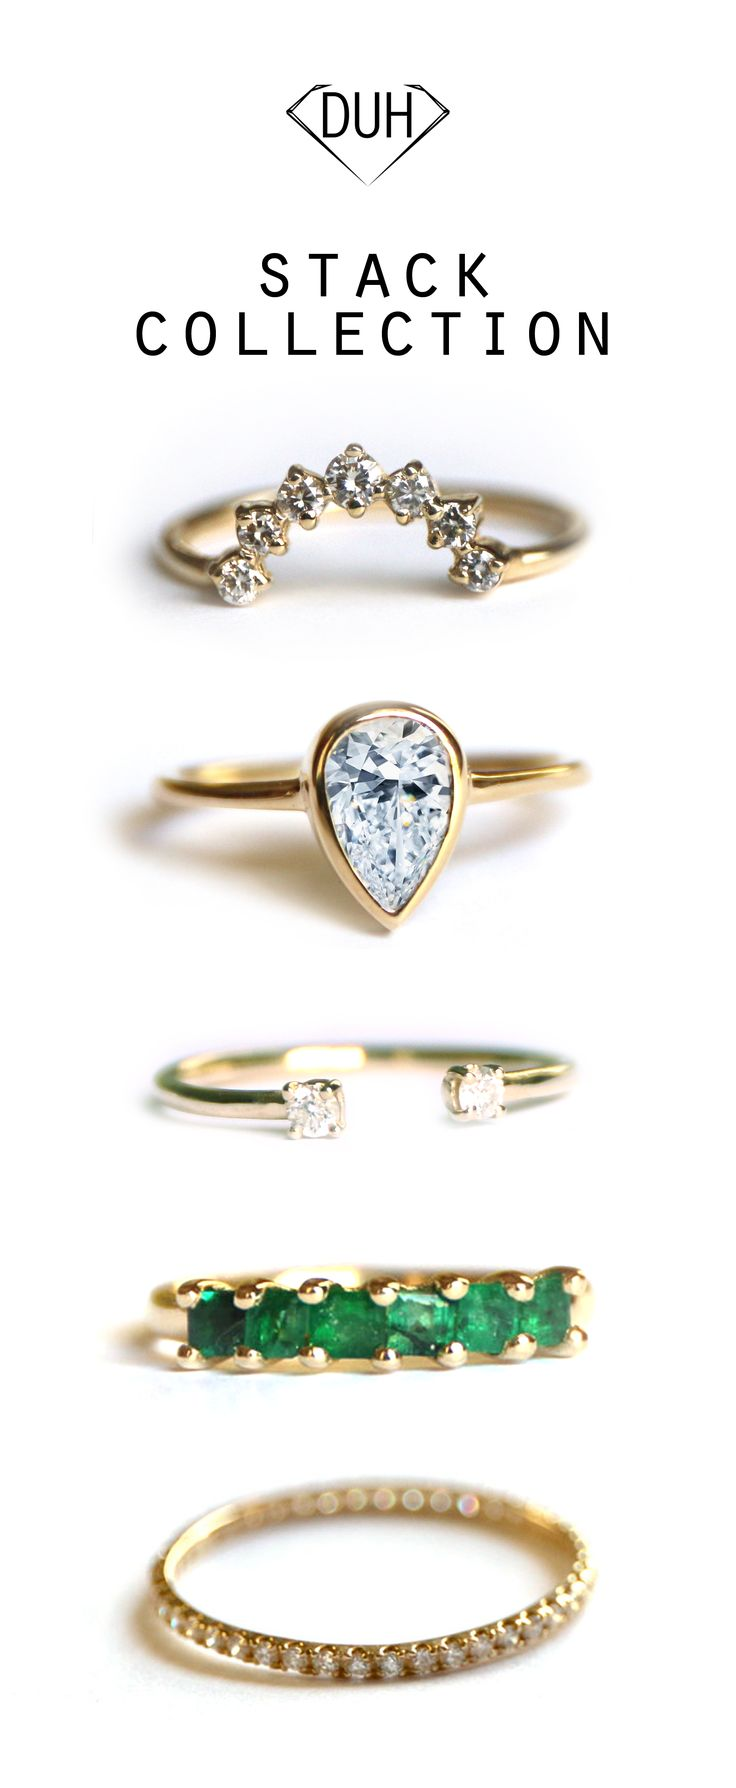 our stacking ring collection! 14k gold bands to embellish your engagement ring - diamond studded cresent ring, bezel set pear engagement ring, diamond duet ring, emerald half eternity band and a delicate diamond eternity band! all completely customizable. learn more by getting in touch at info@makehersayduh.com